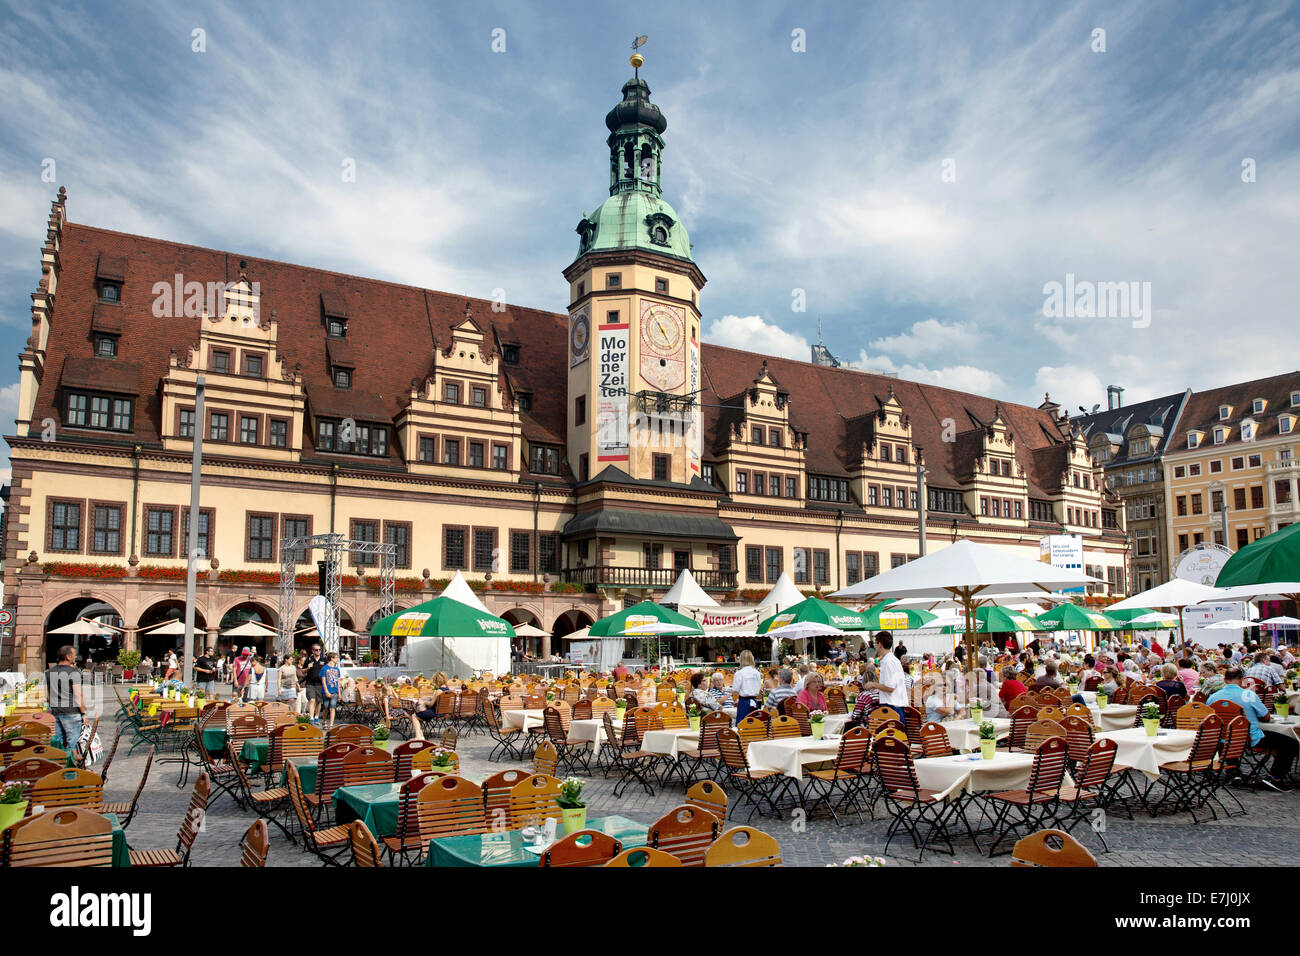 The Old Town Hall And Clock Tower During The Classic Open Festival Stock Photo Alamy